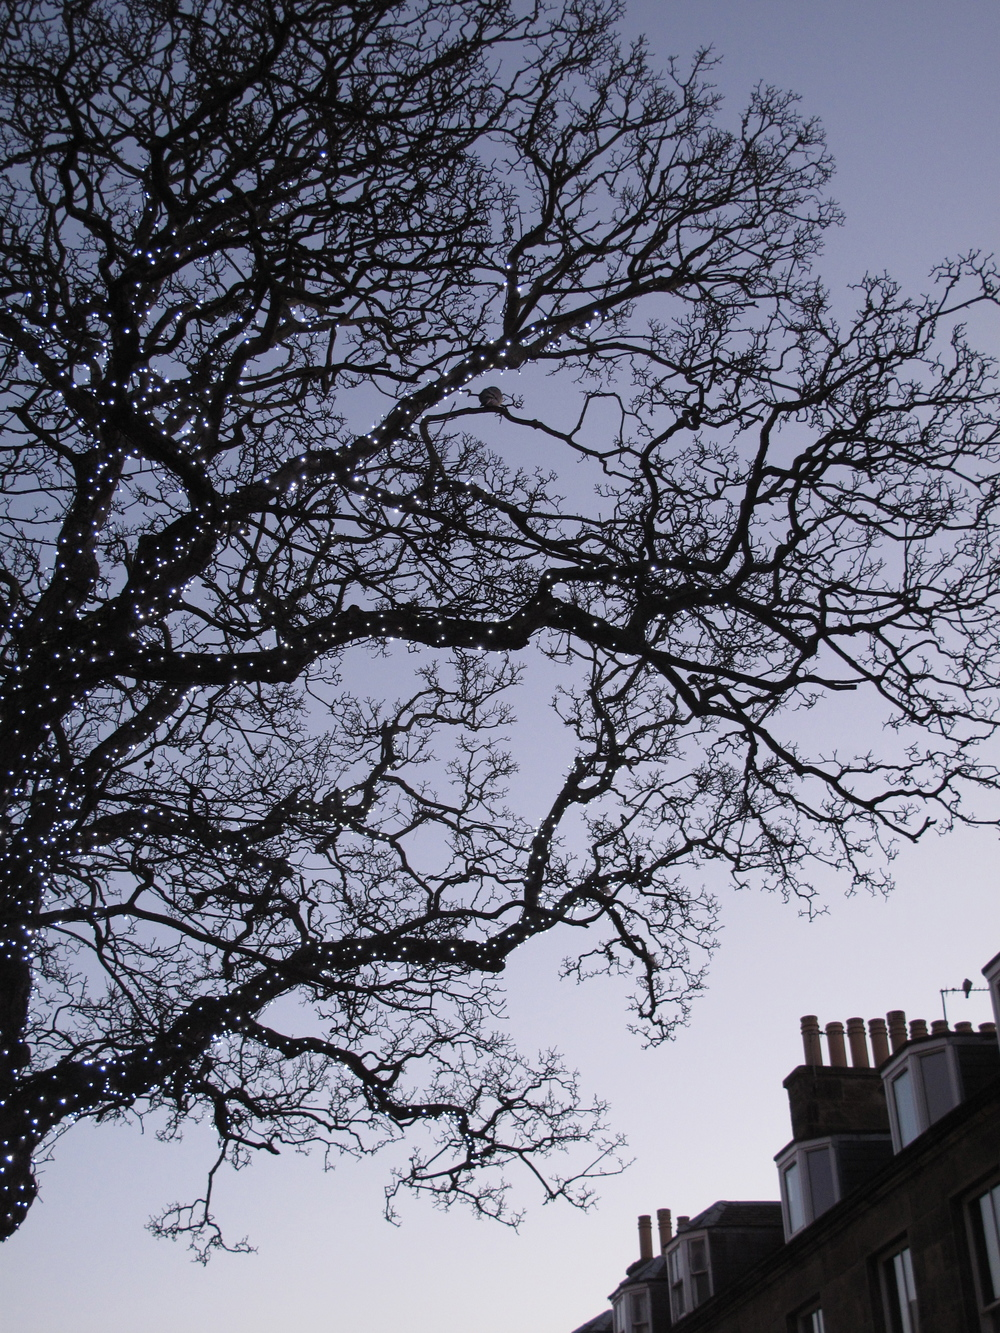 Christmas lights in bare tree branches.